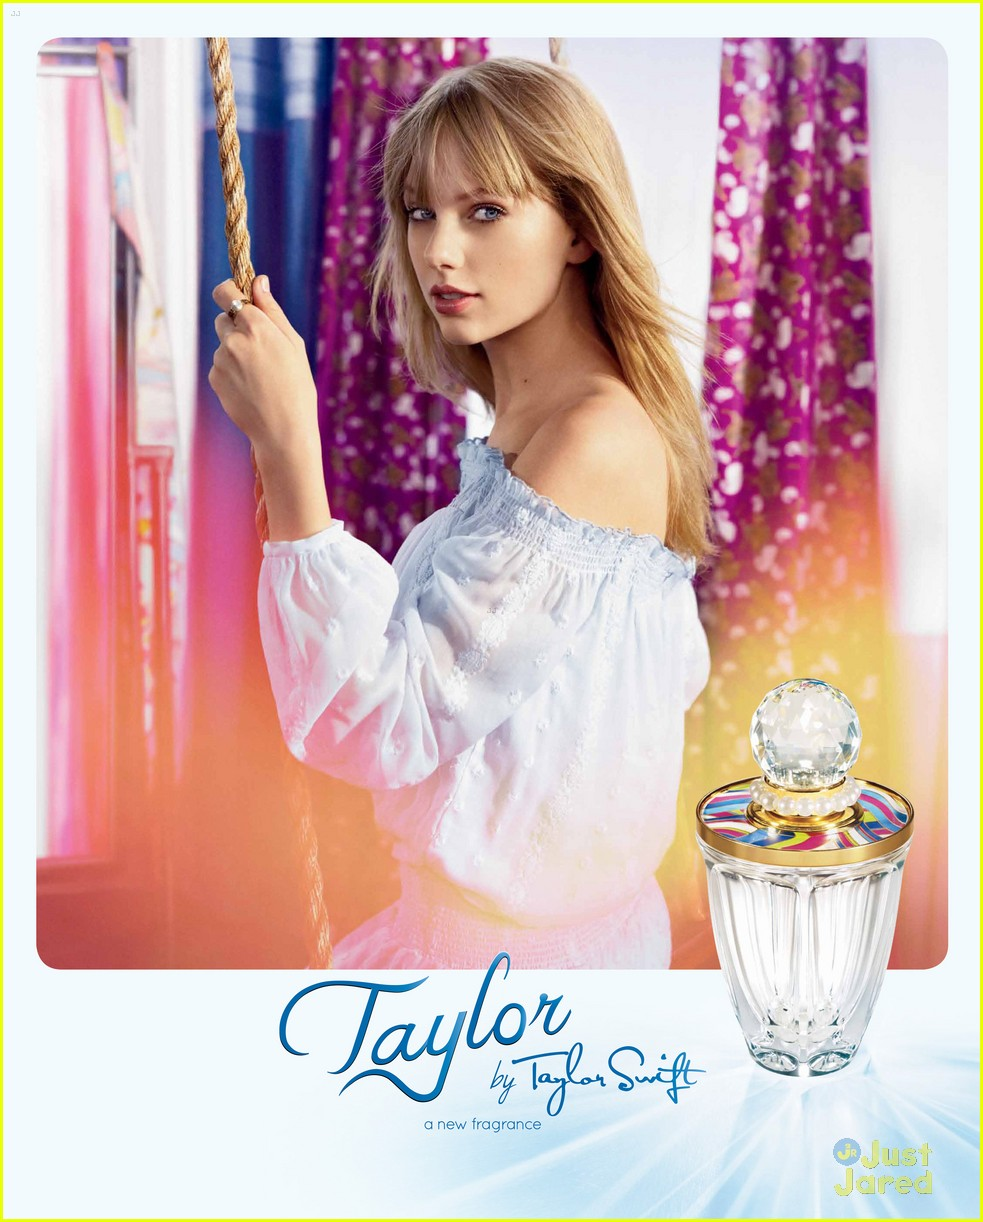 taylor by taylor swift 2013 from fairy tale story to